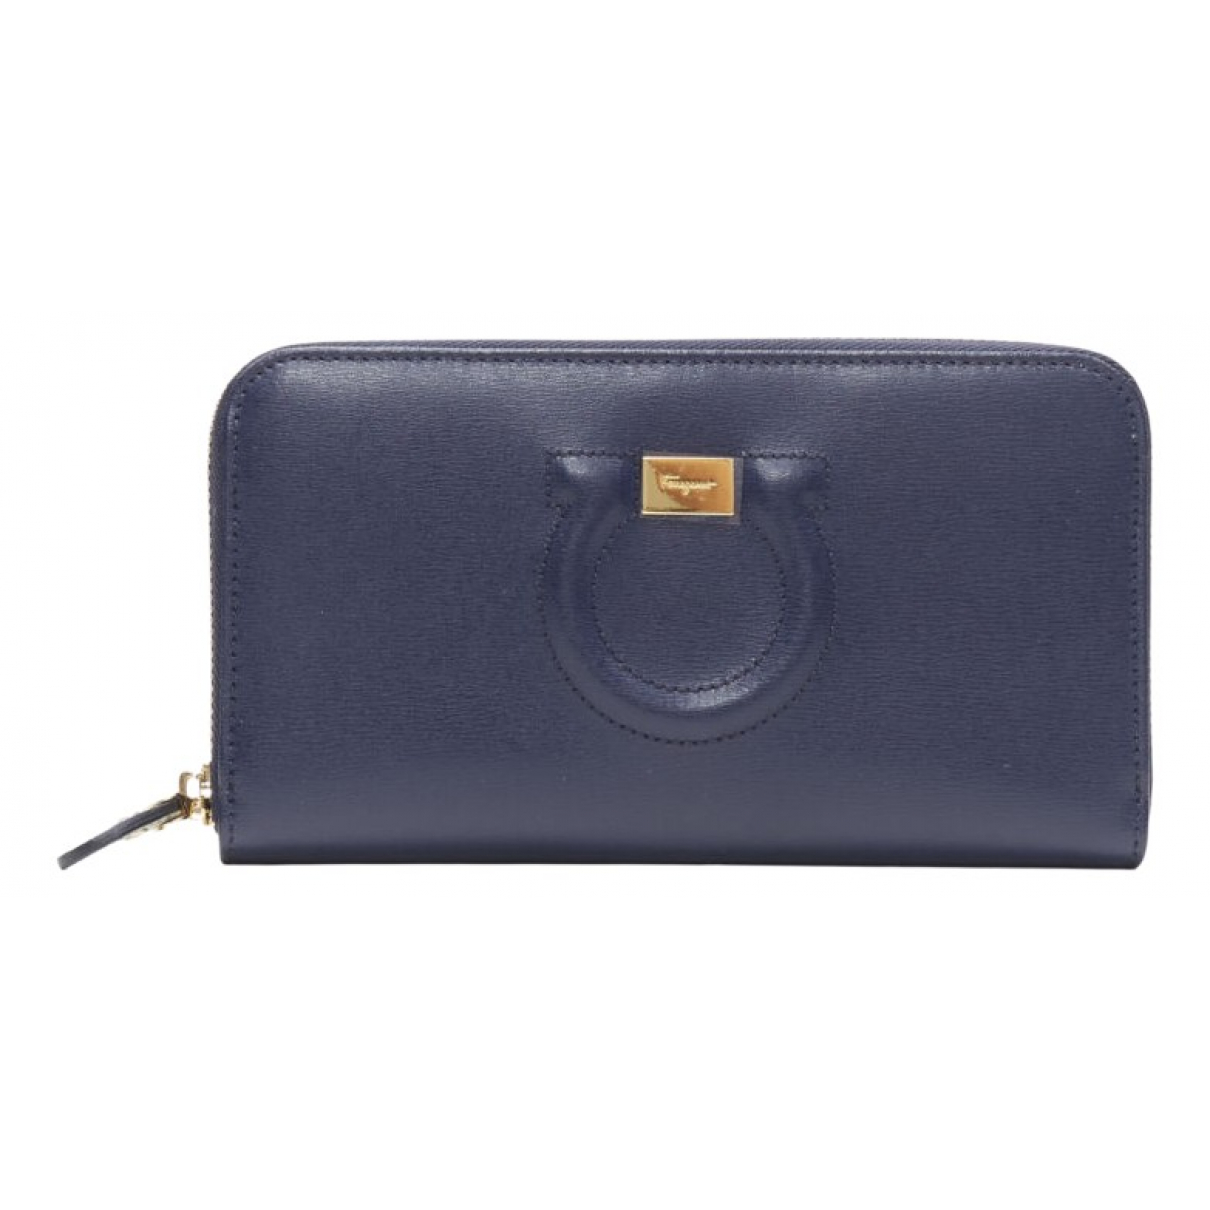 Salvatore Ferragamo N Blue Leather wallet for Women N